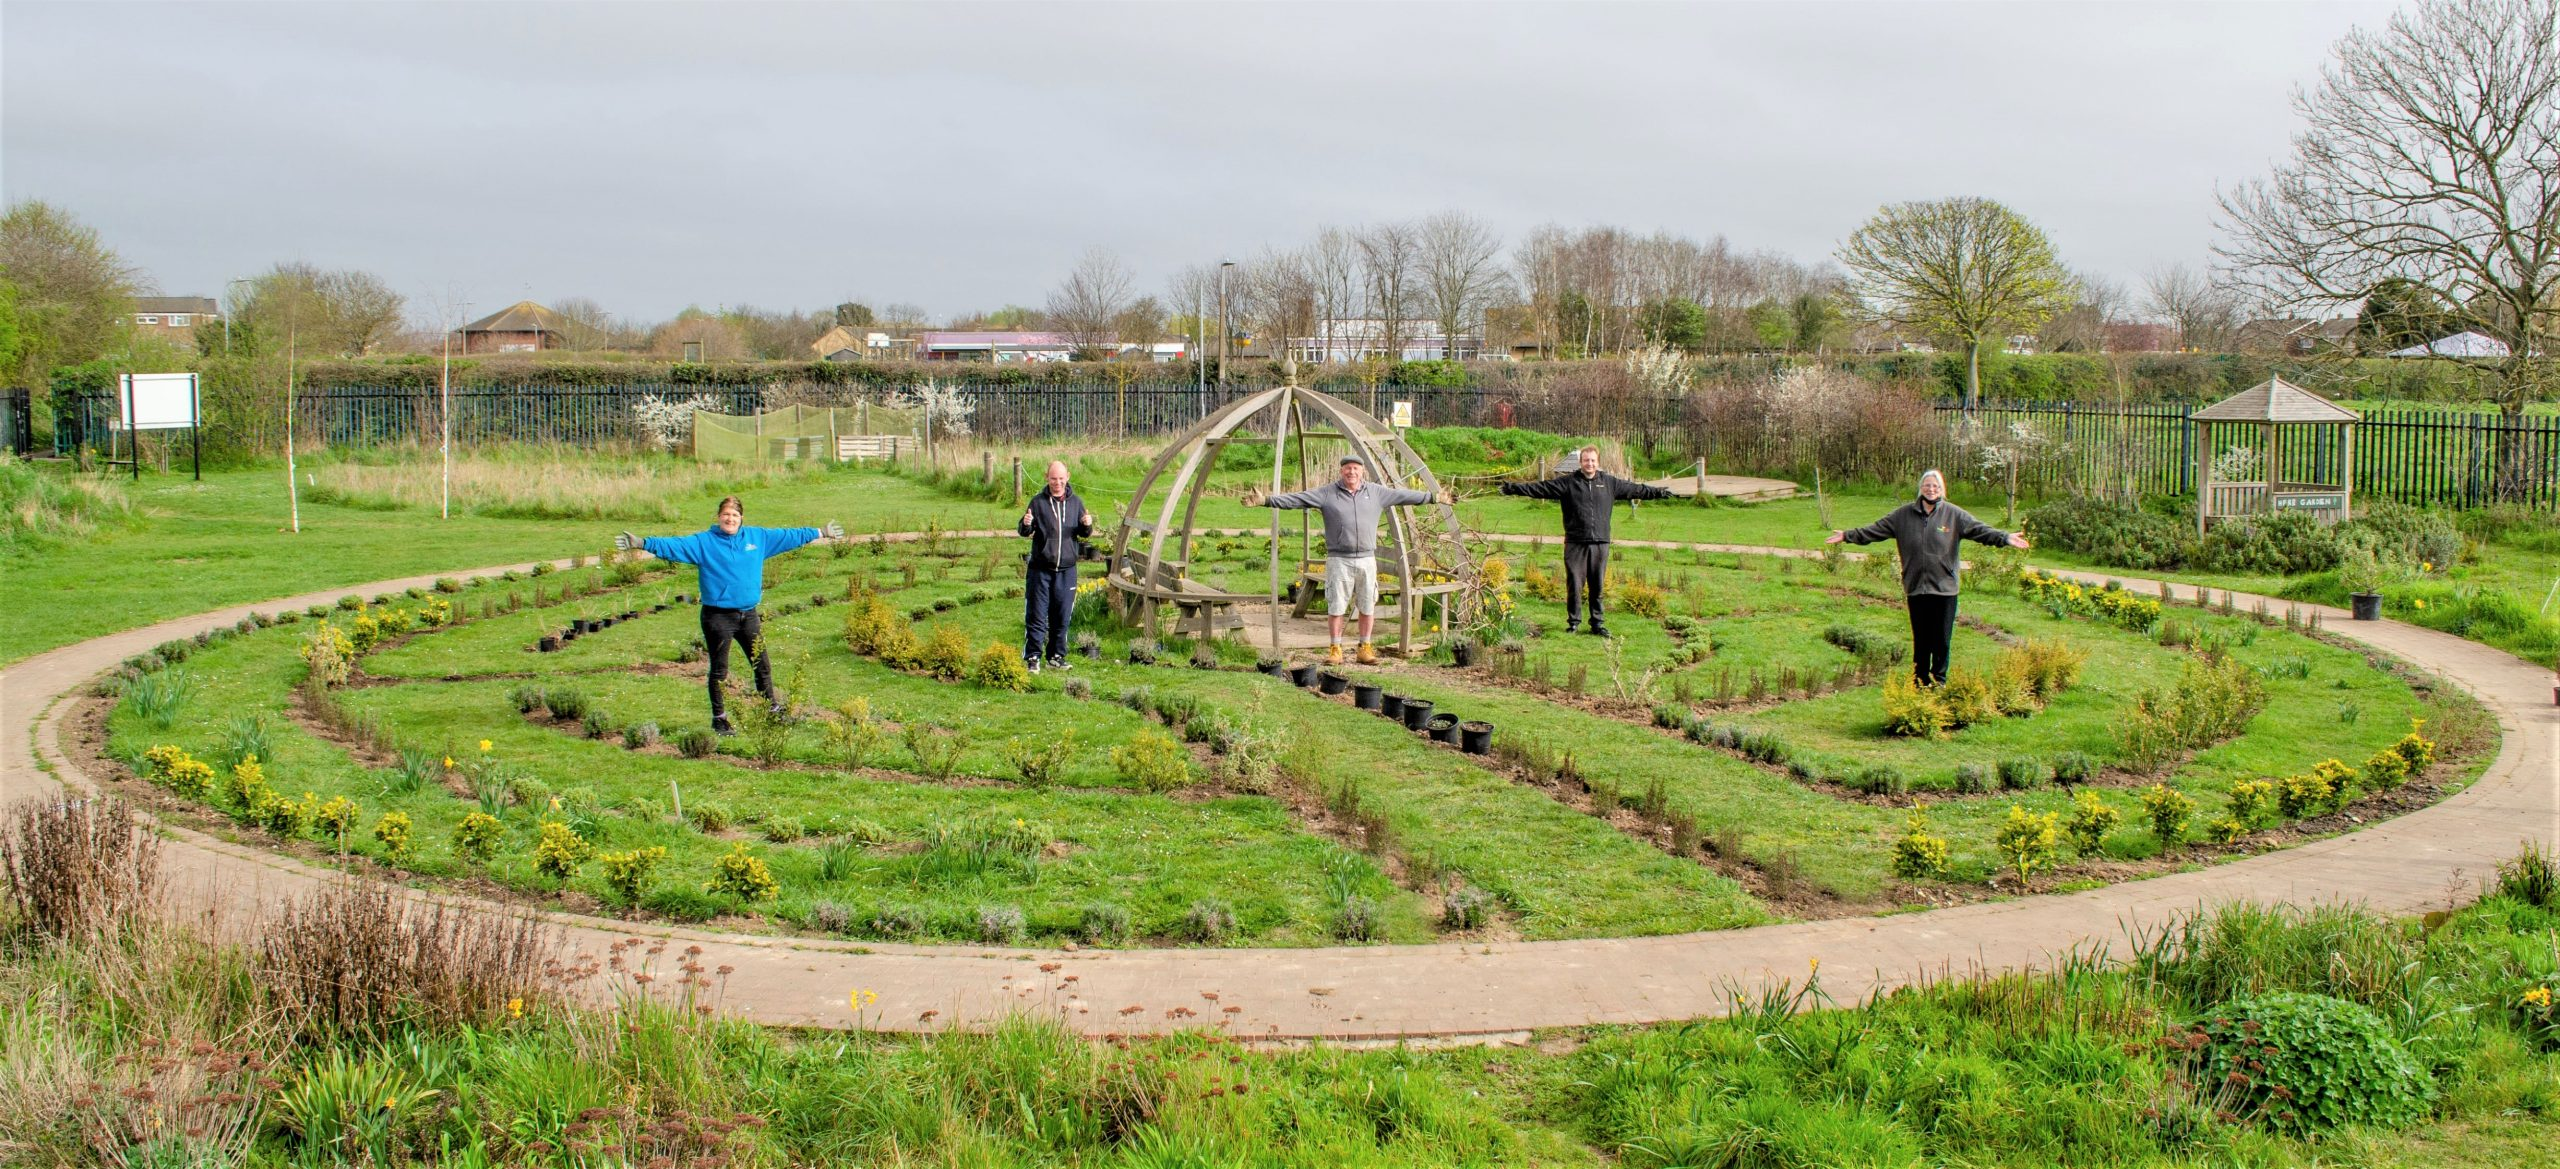 Shoebury therpeutic labyrinth helps wellbeing through nature